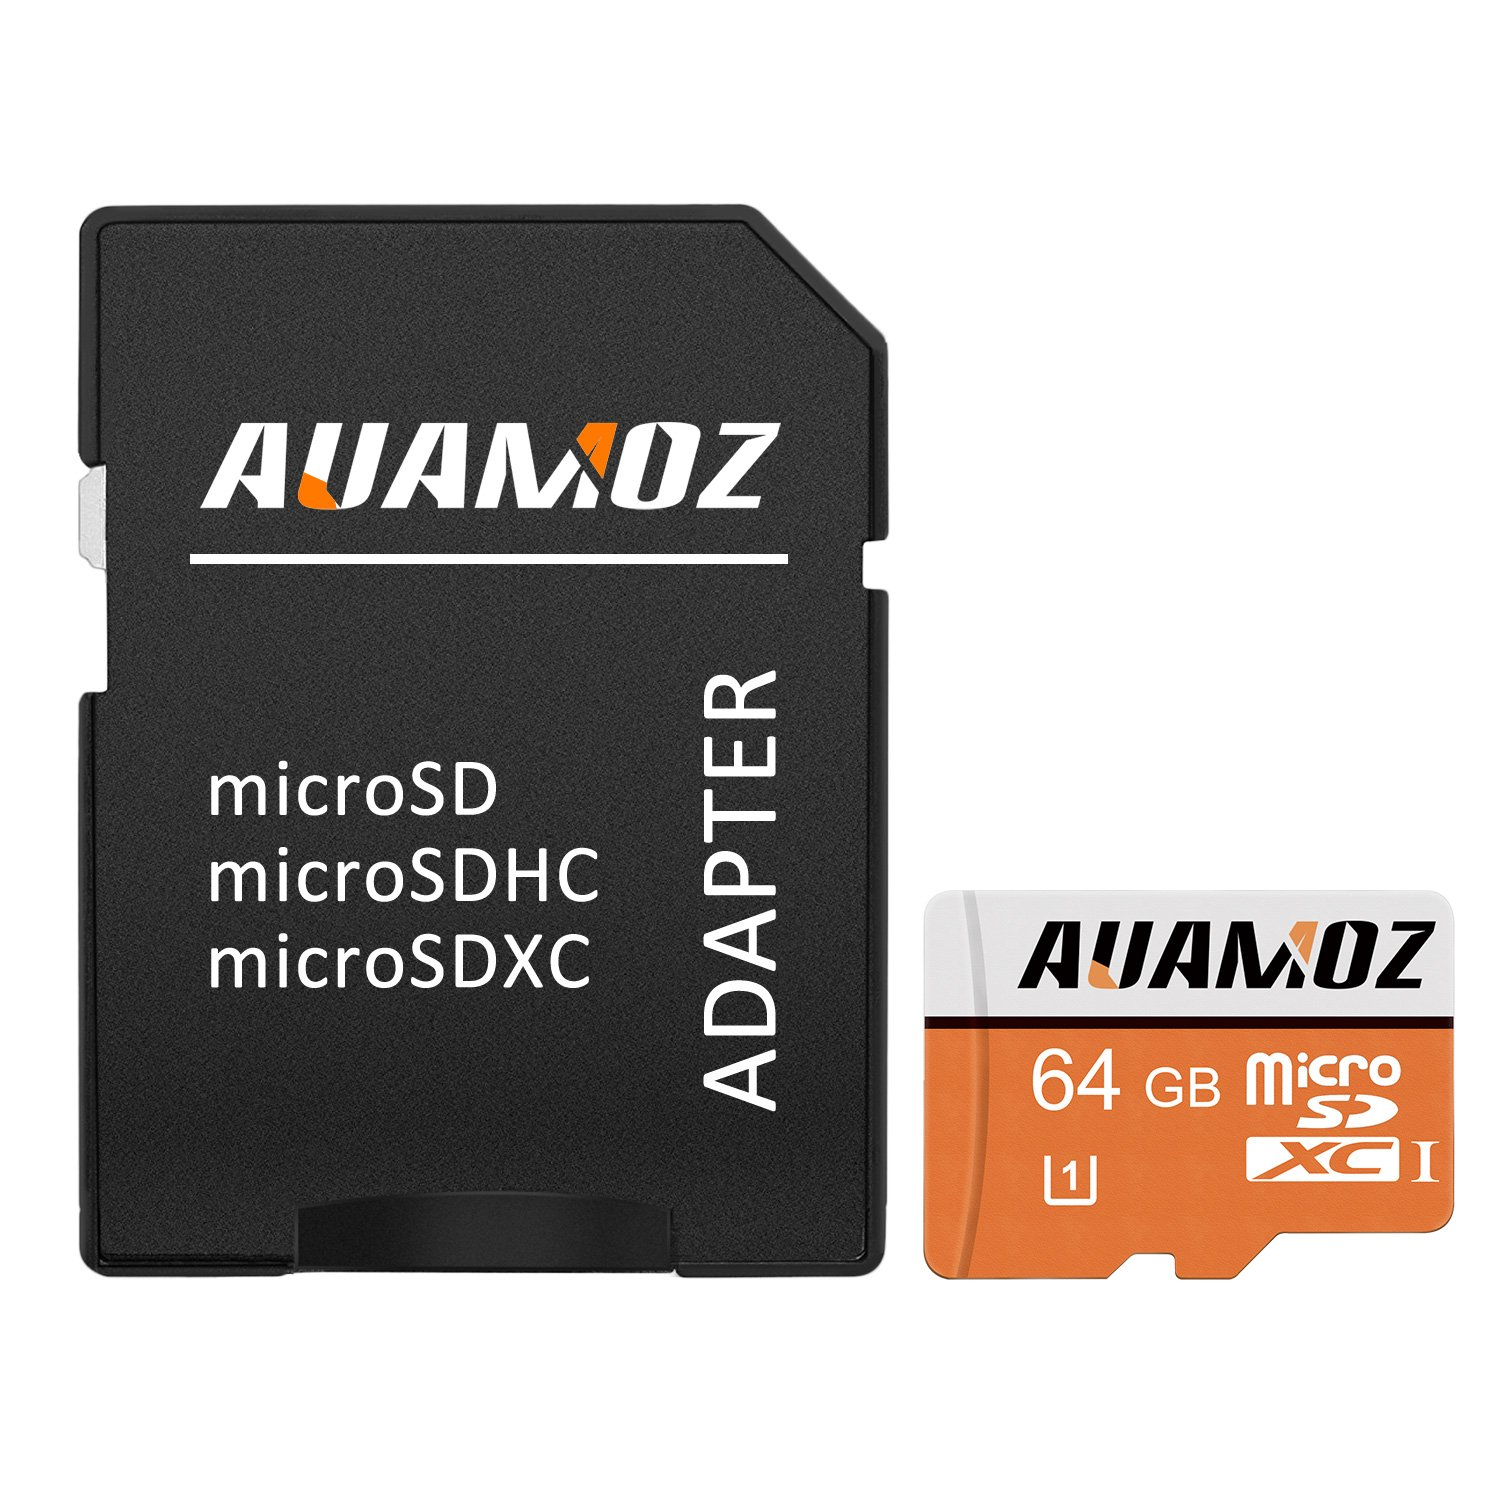 Micro SD Card 64GB, AUAMOZ Micro SDXC Class 10 UHS-I High Speed Memory Card for Phone,Tablet and PCs - with Adapter